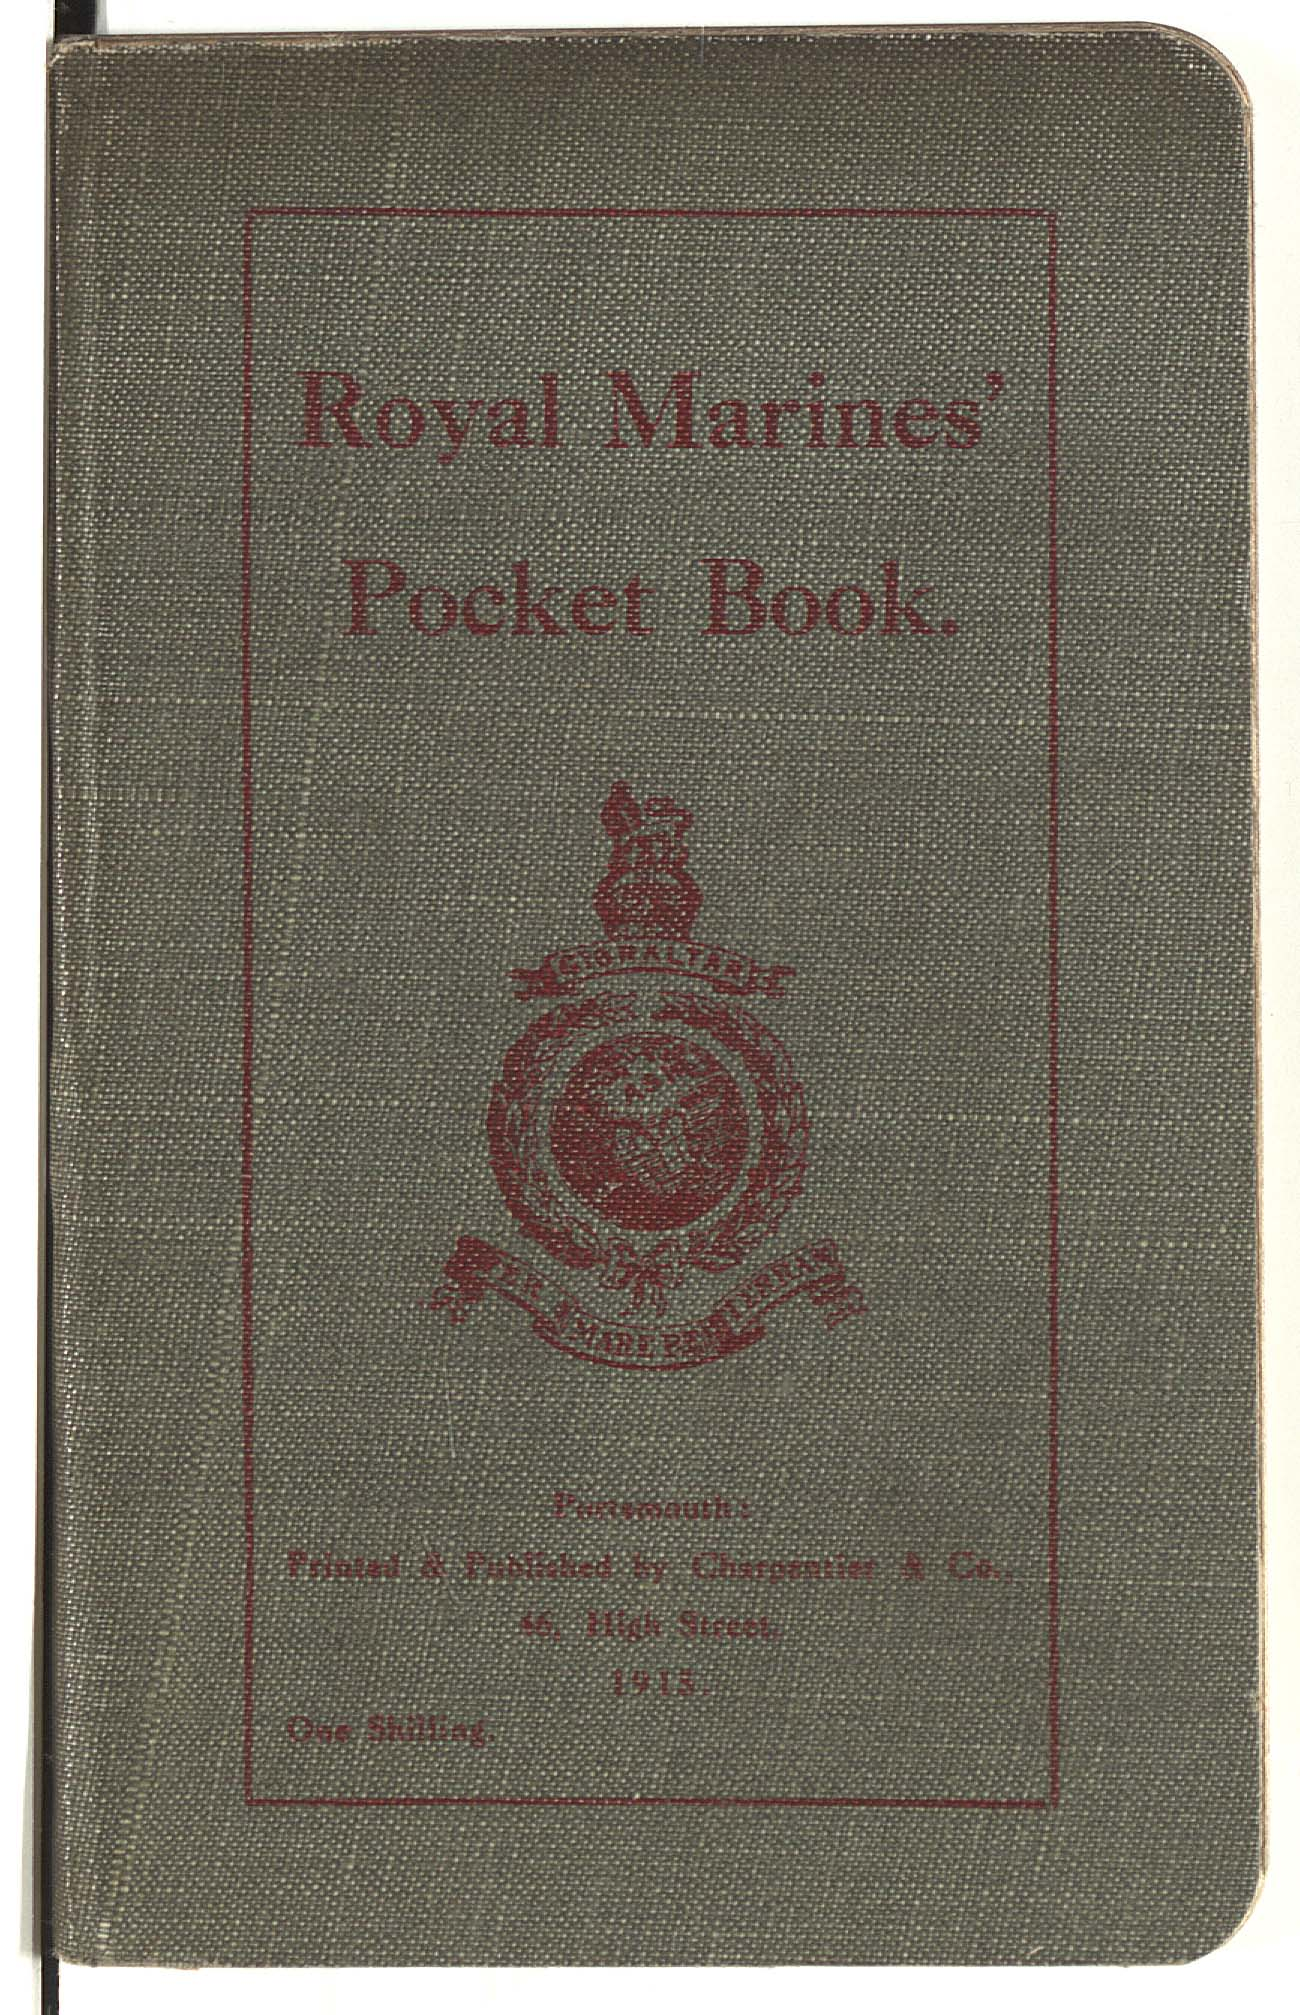 Royal Marines' Pocket Book